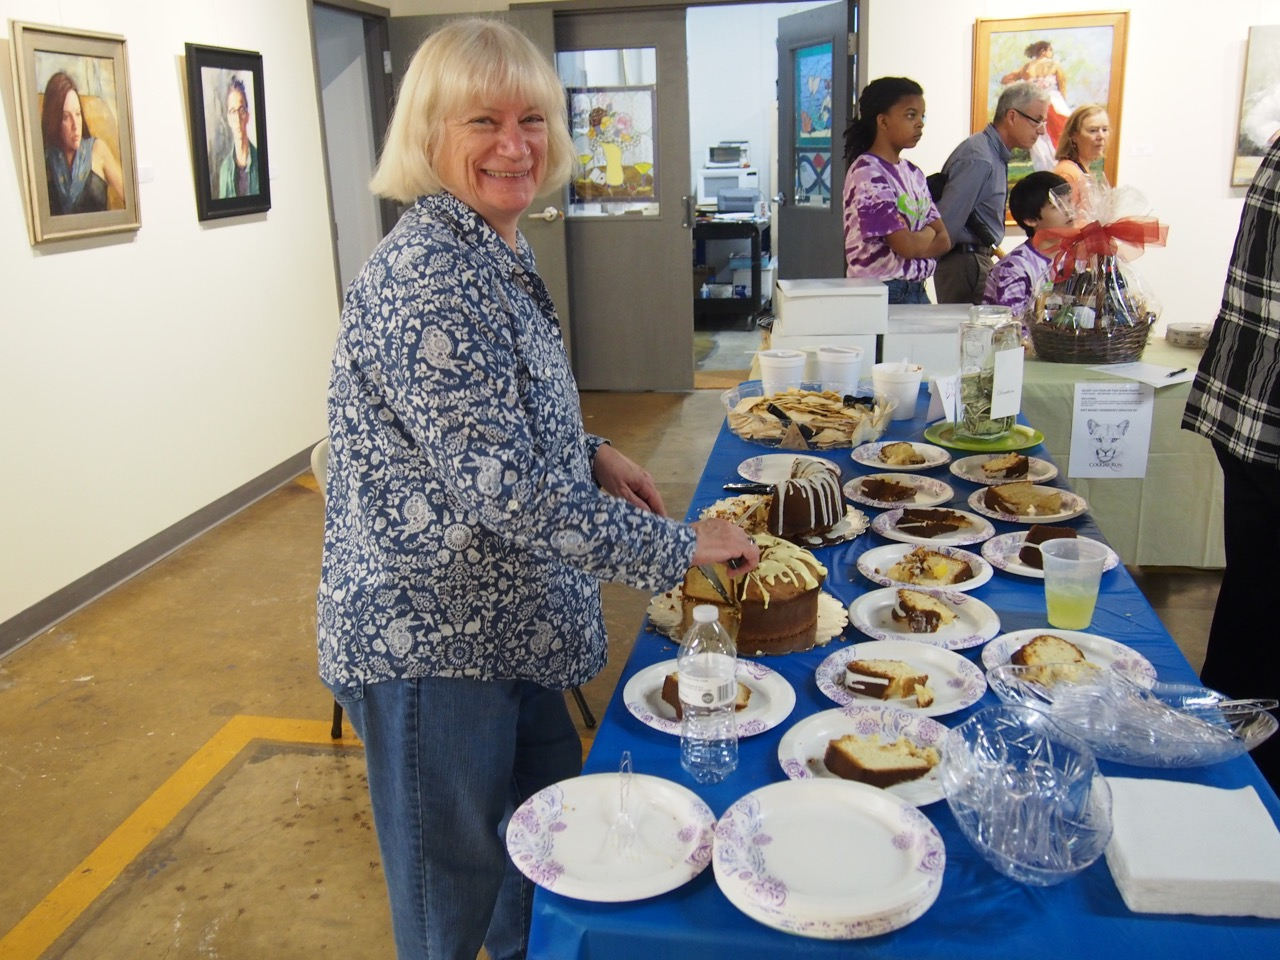 Patty Swift, Volunteer Extraordinaire, with Cake